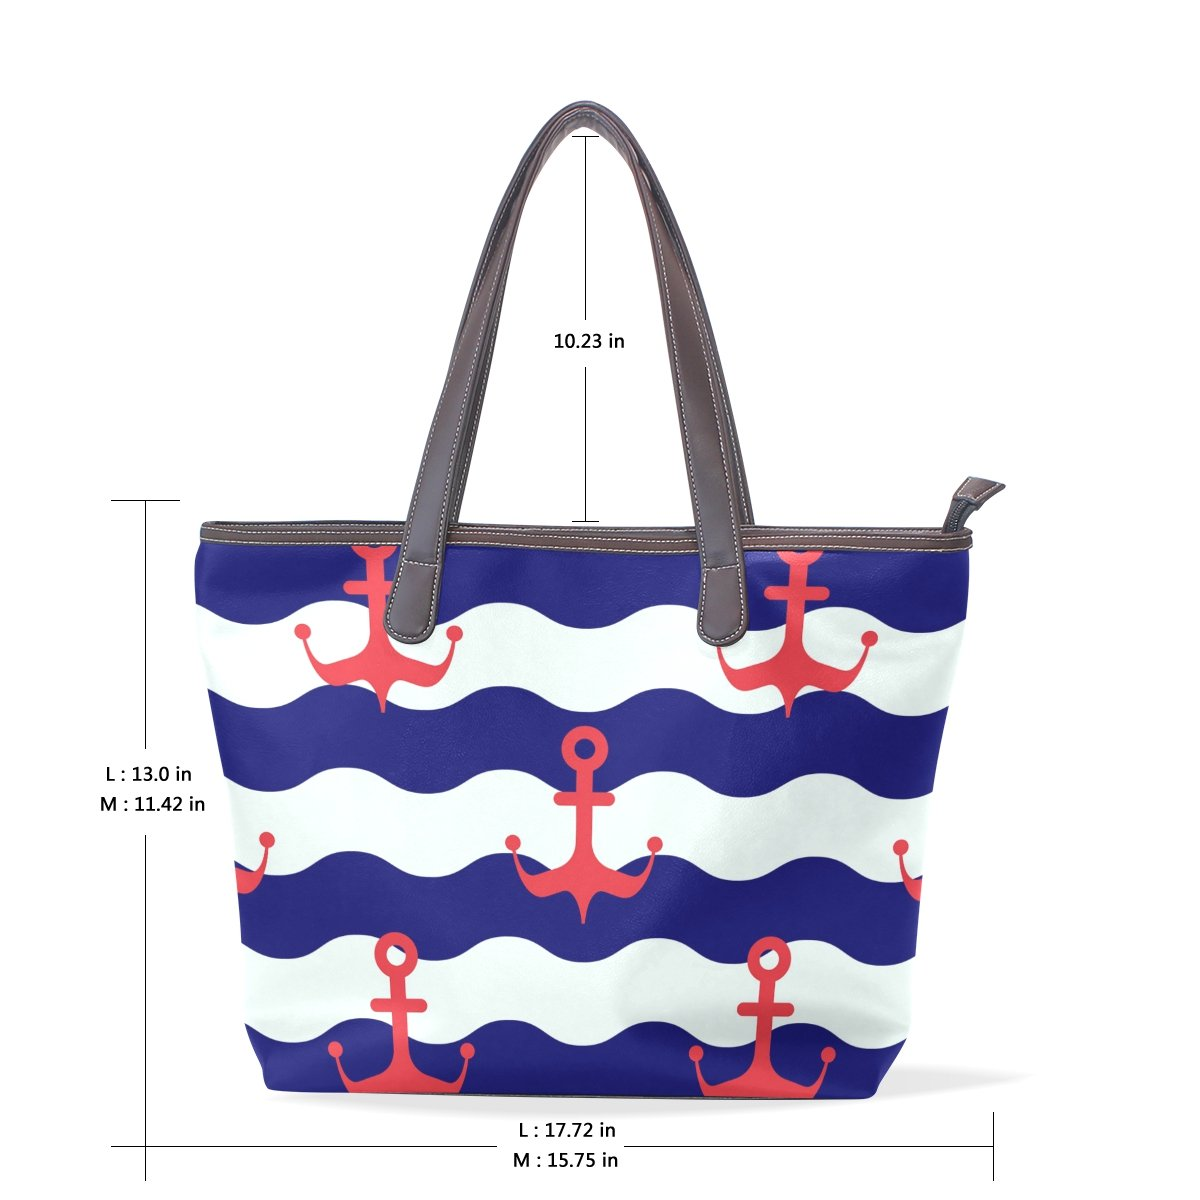 IMOBABY Womens Large Handbags Tote Bags Blue Marine Anchors Nautical Patern Leather Top Handle Shoulder Bags,Ts024